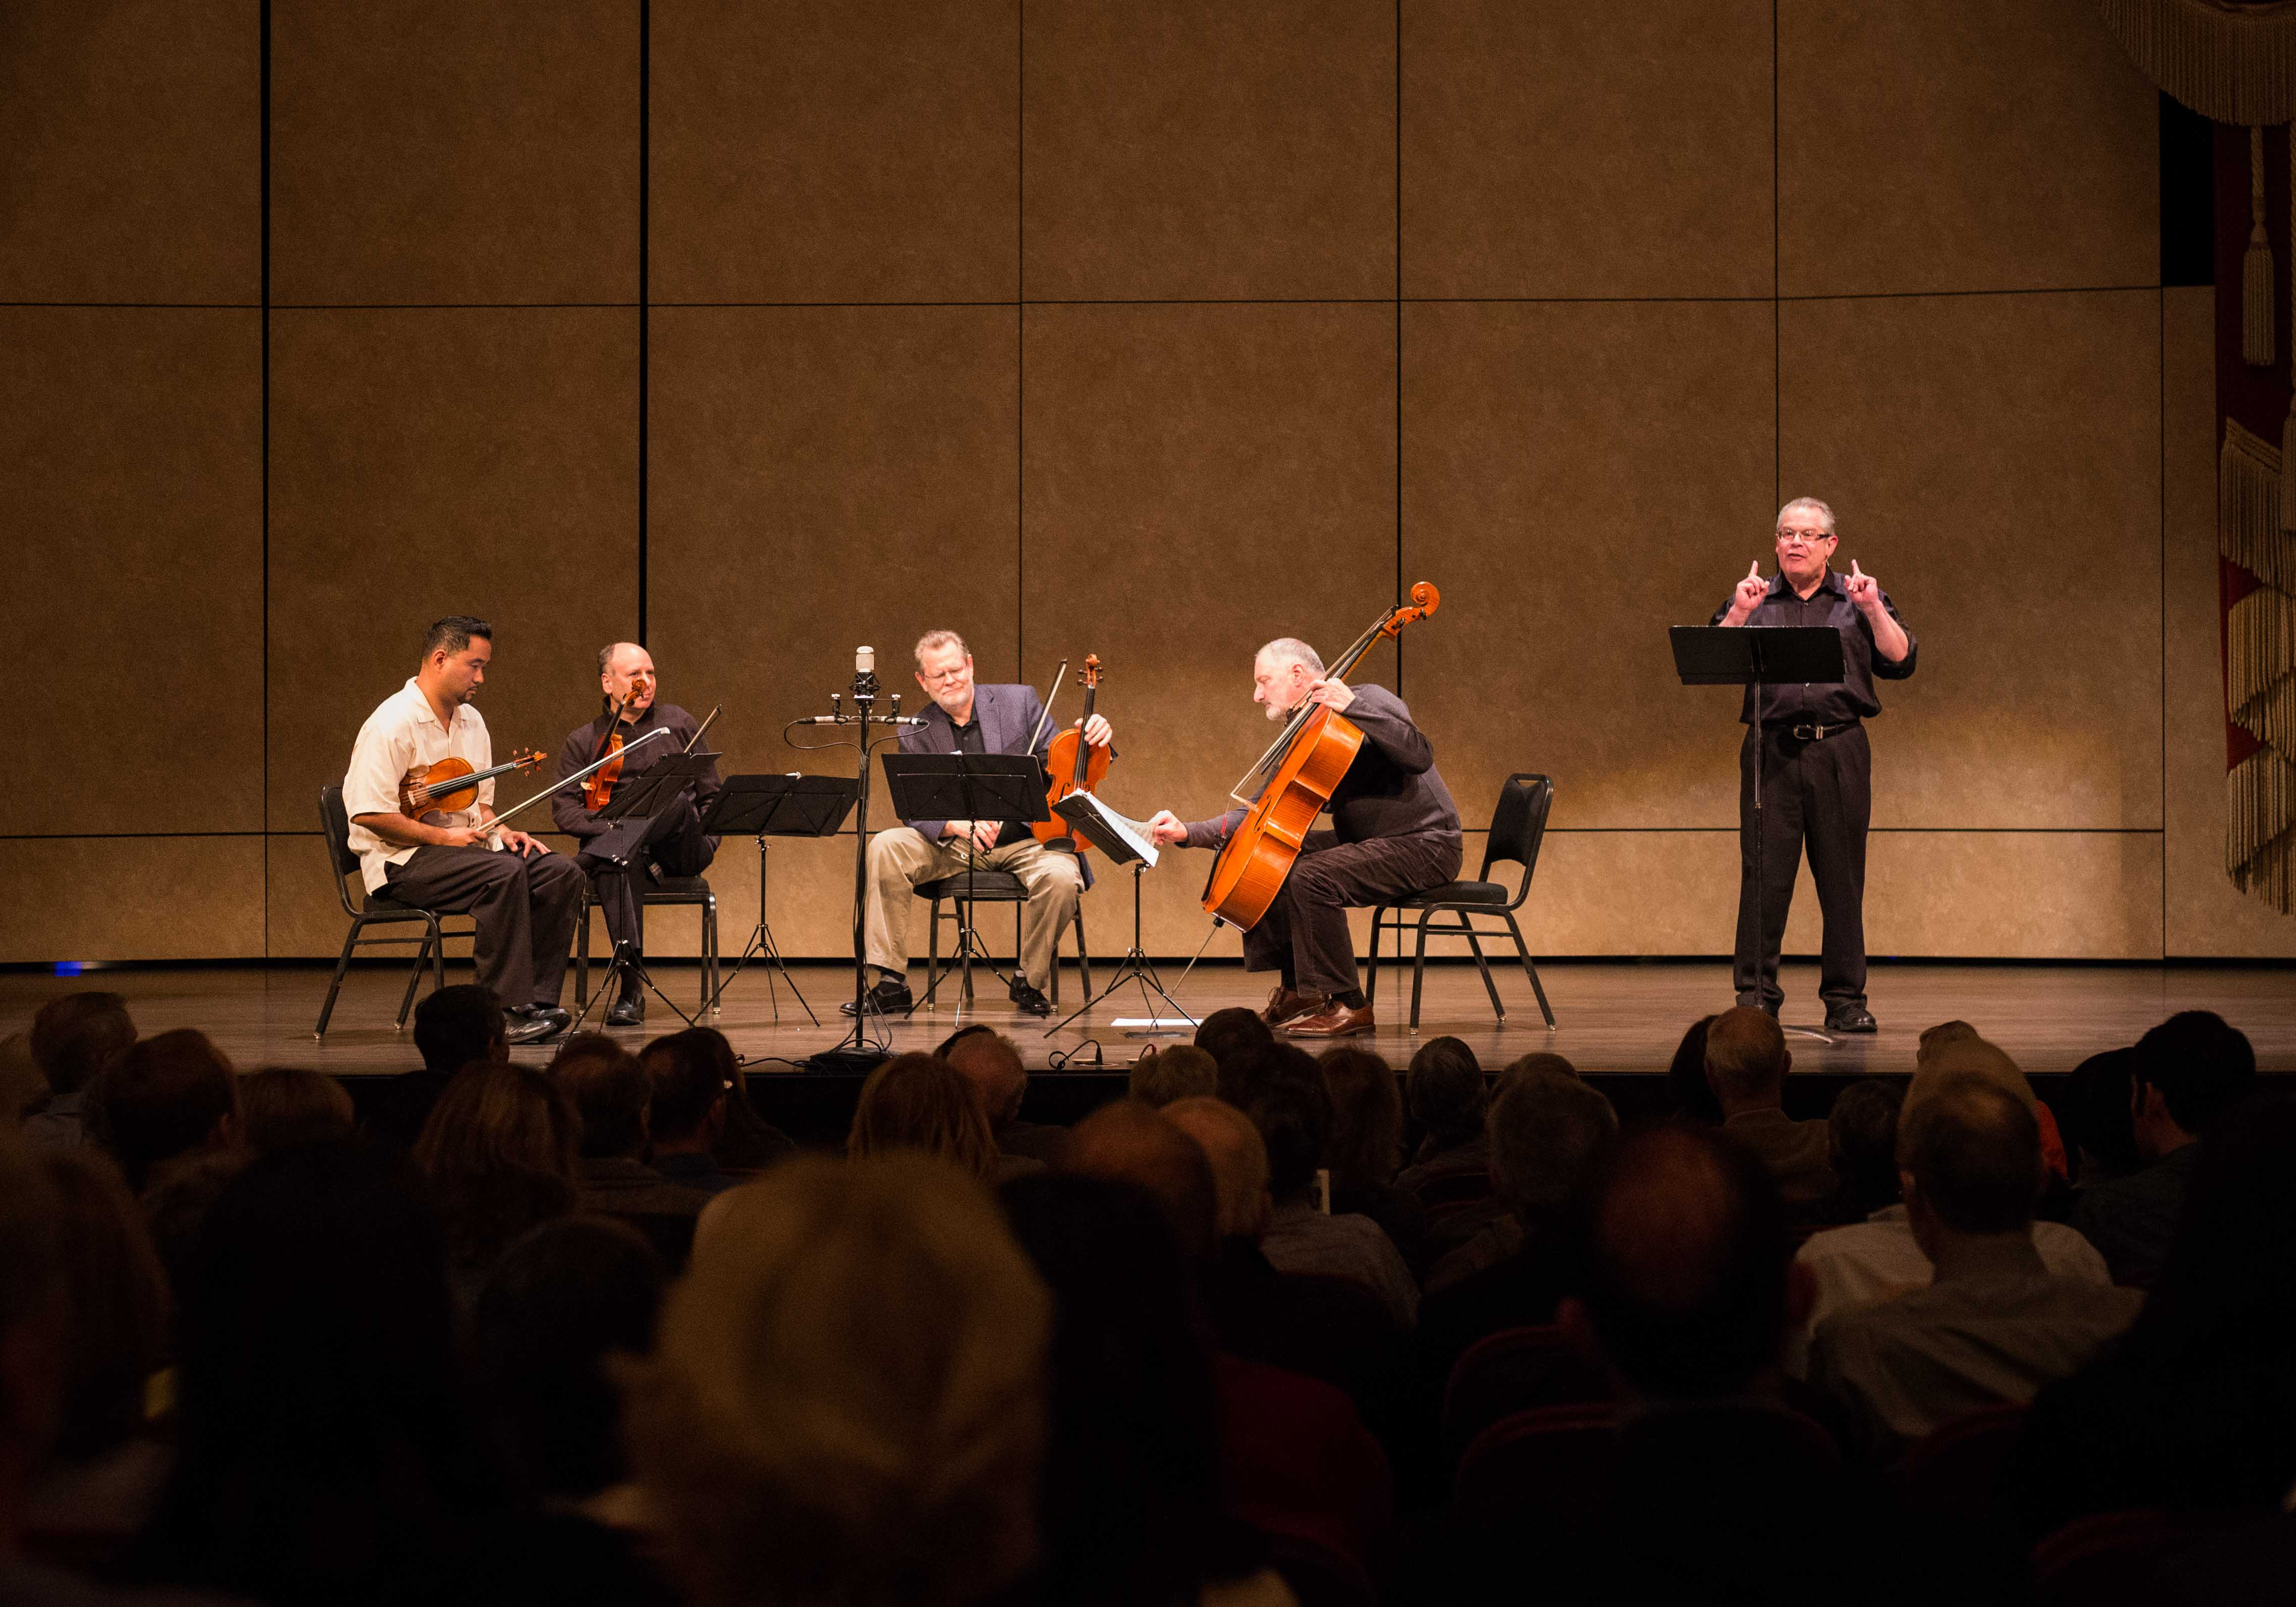 Robert Greenberg and the Alexander String Quartet